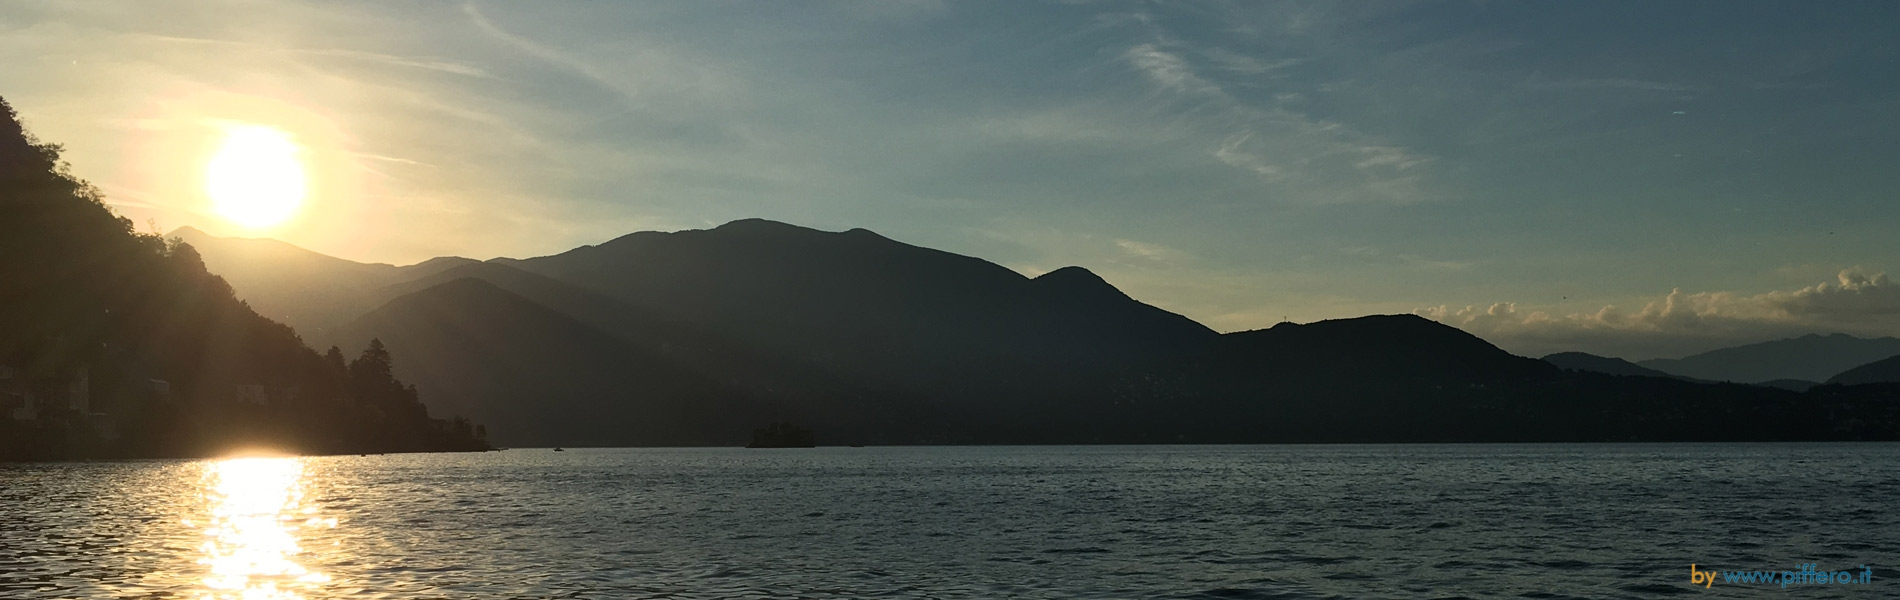 Sunrise on Lake Maggiore